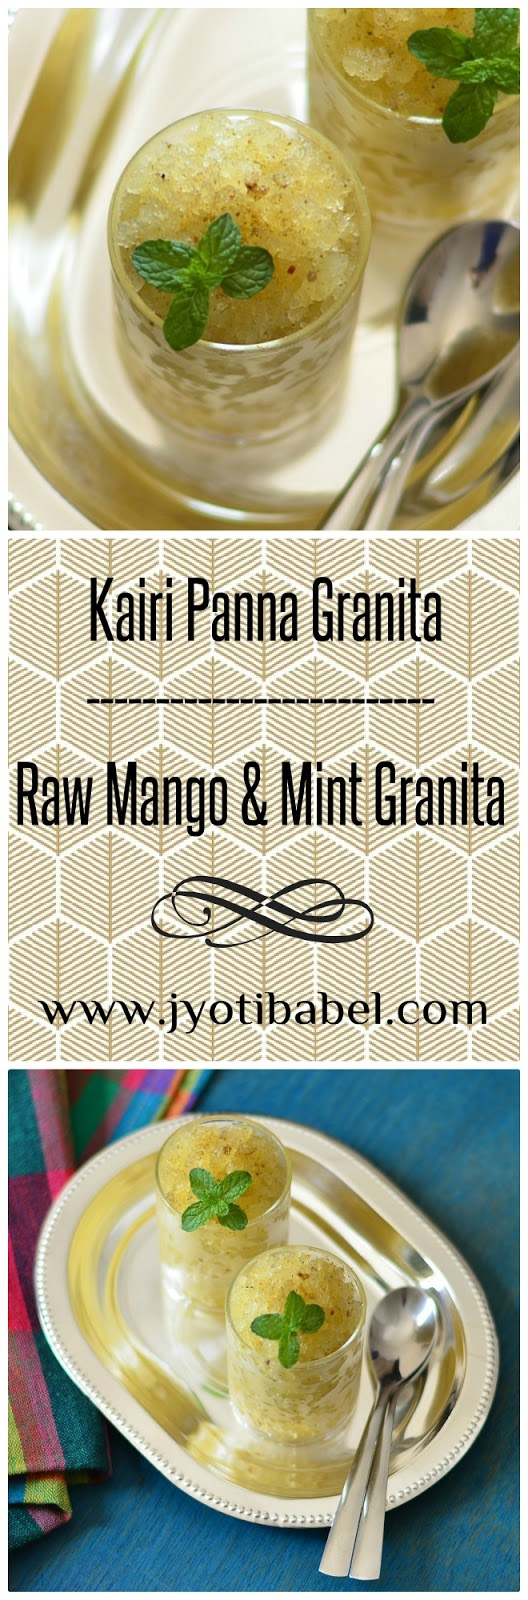 Kairi Panna Granita, as the name says is granita made with the much loved Indian summer drink - Kairi Panna/Panha. Check out my recipe here.